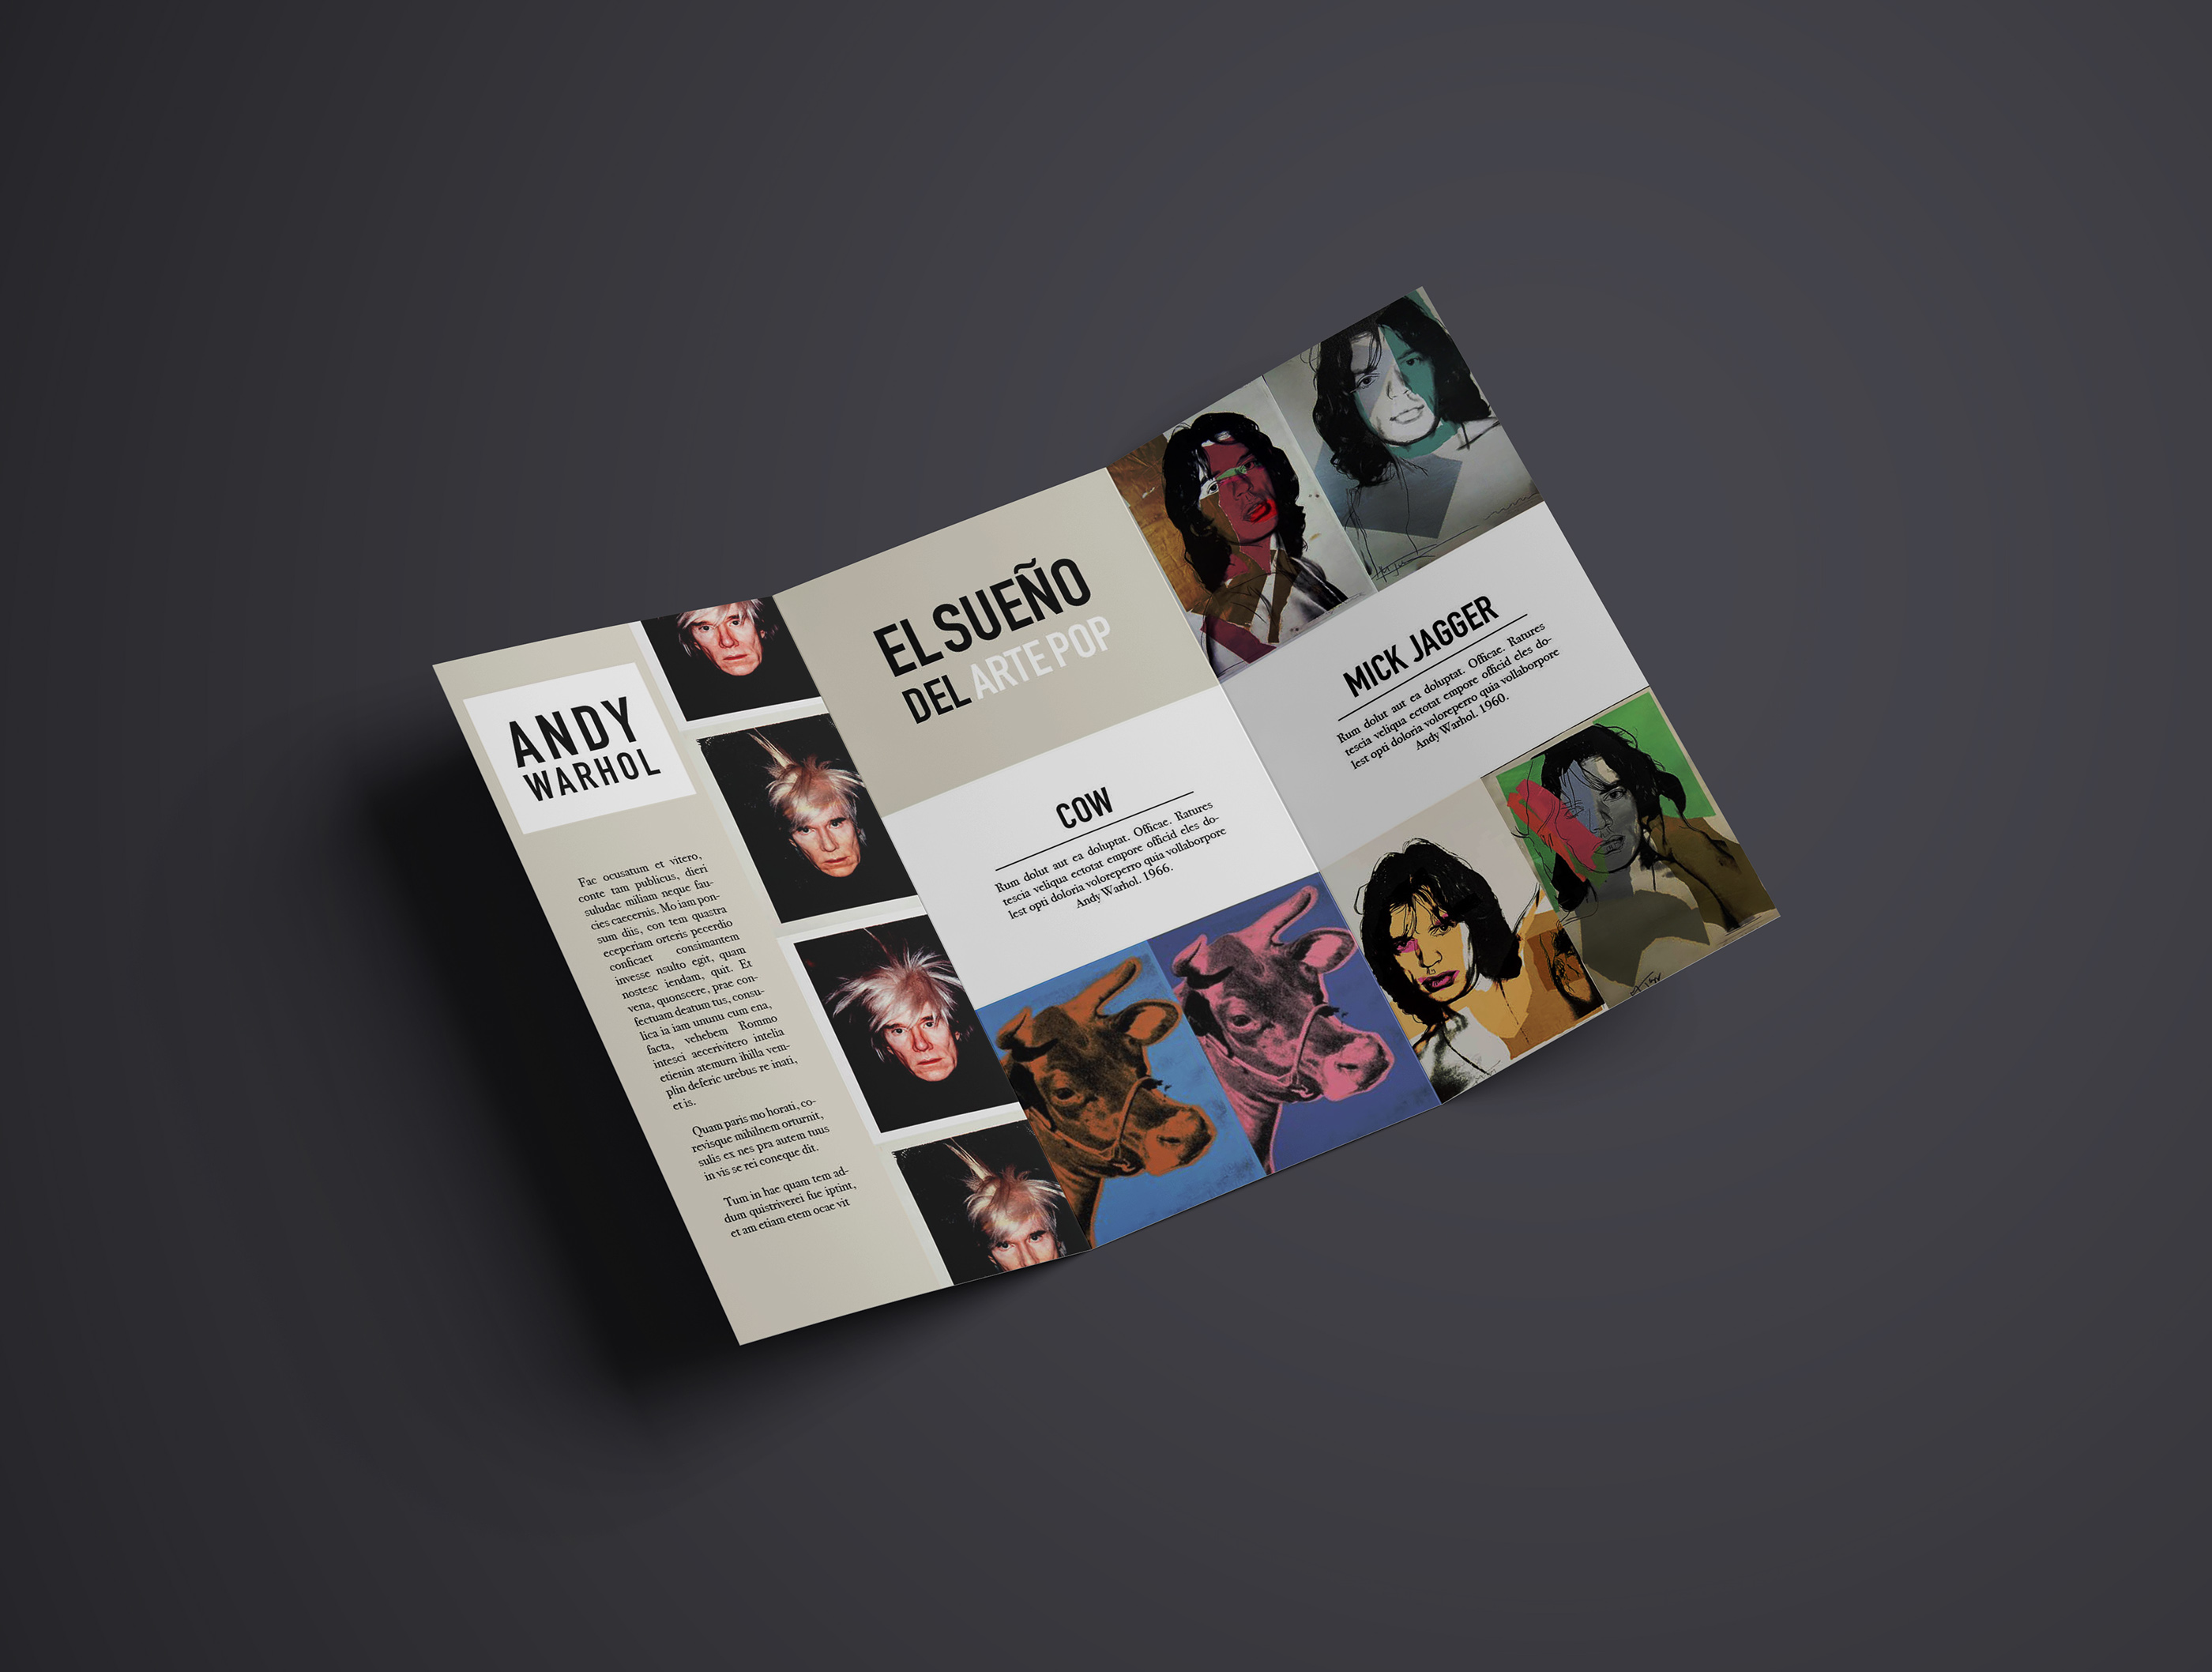 Andy Warhol Pop Dreams Exhibit Trifold Brochure Example